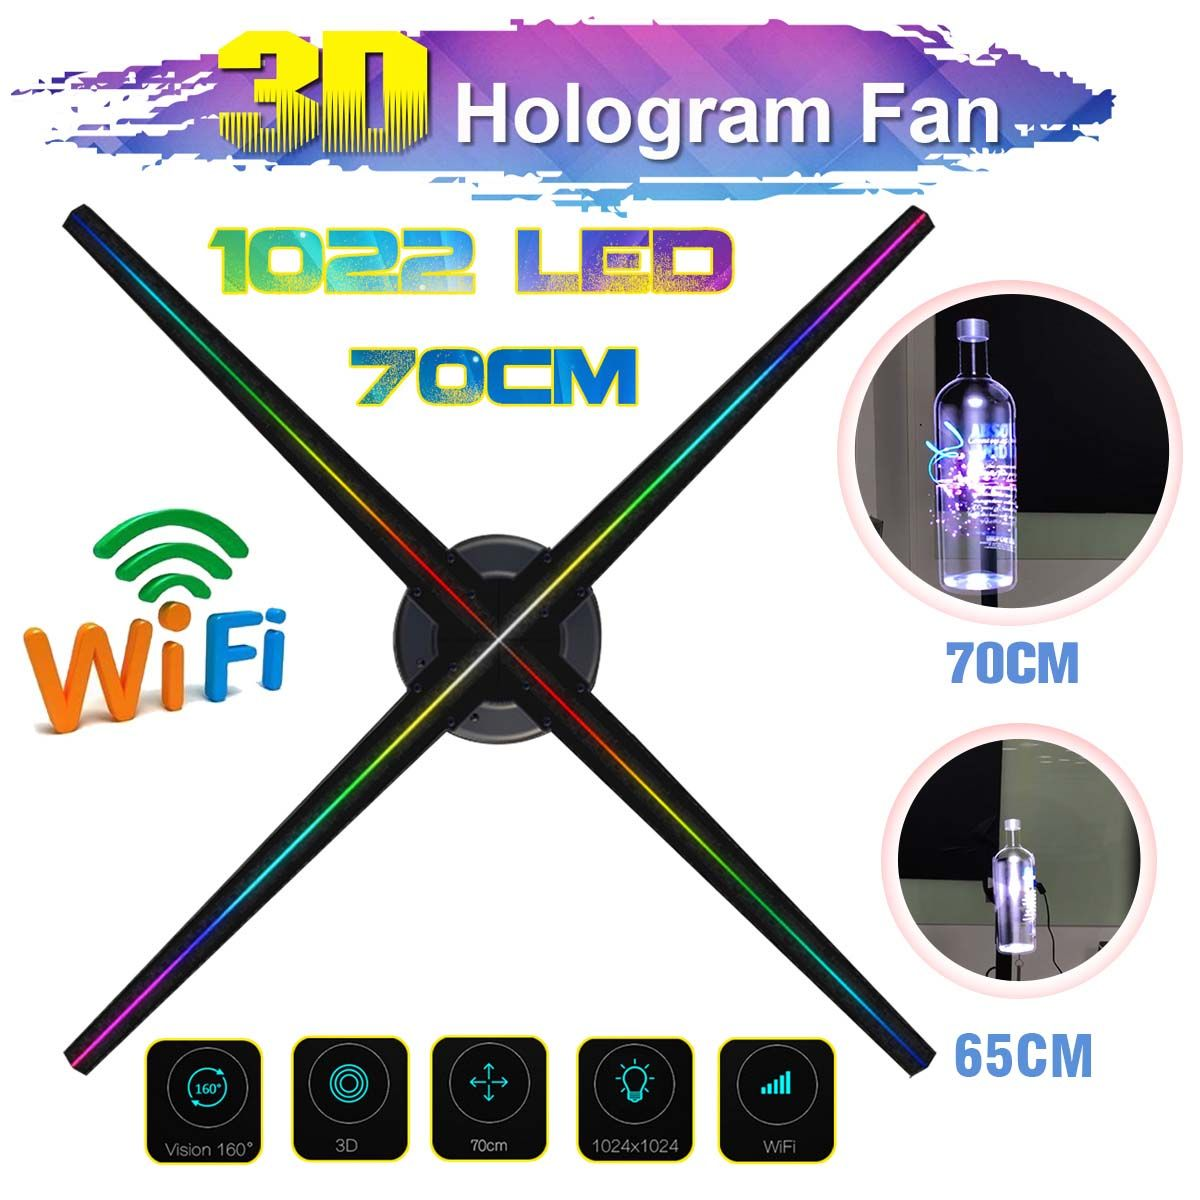 Verbesserte 70 cm Wifi 3D Holographische Projektor Fan Hologramm Player LED Video Display Fan Werbung Licht APP Control Vier Axil